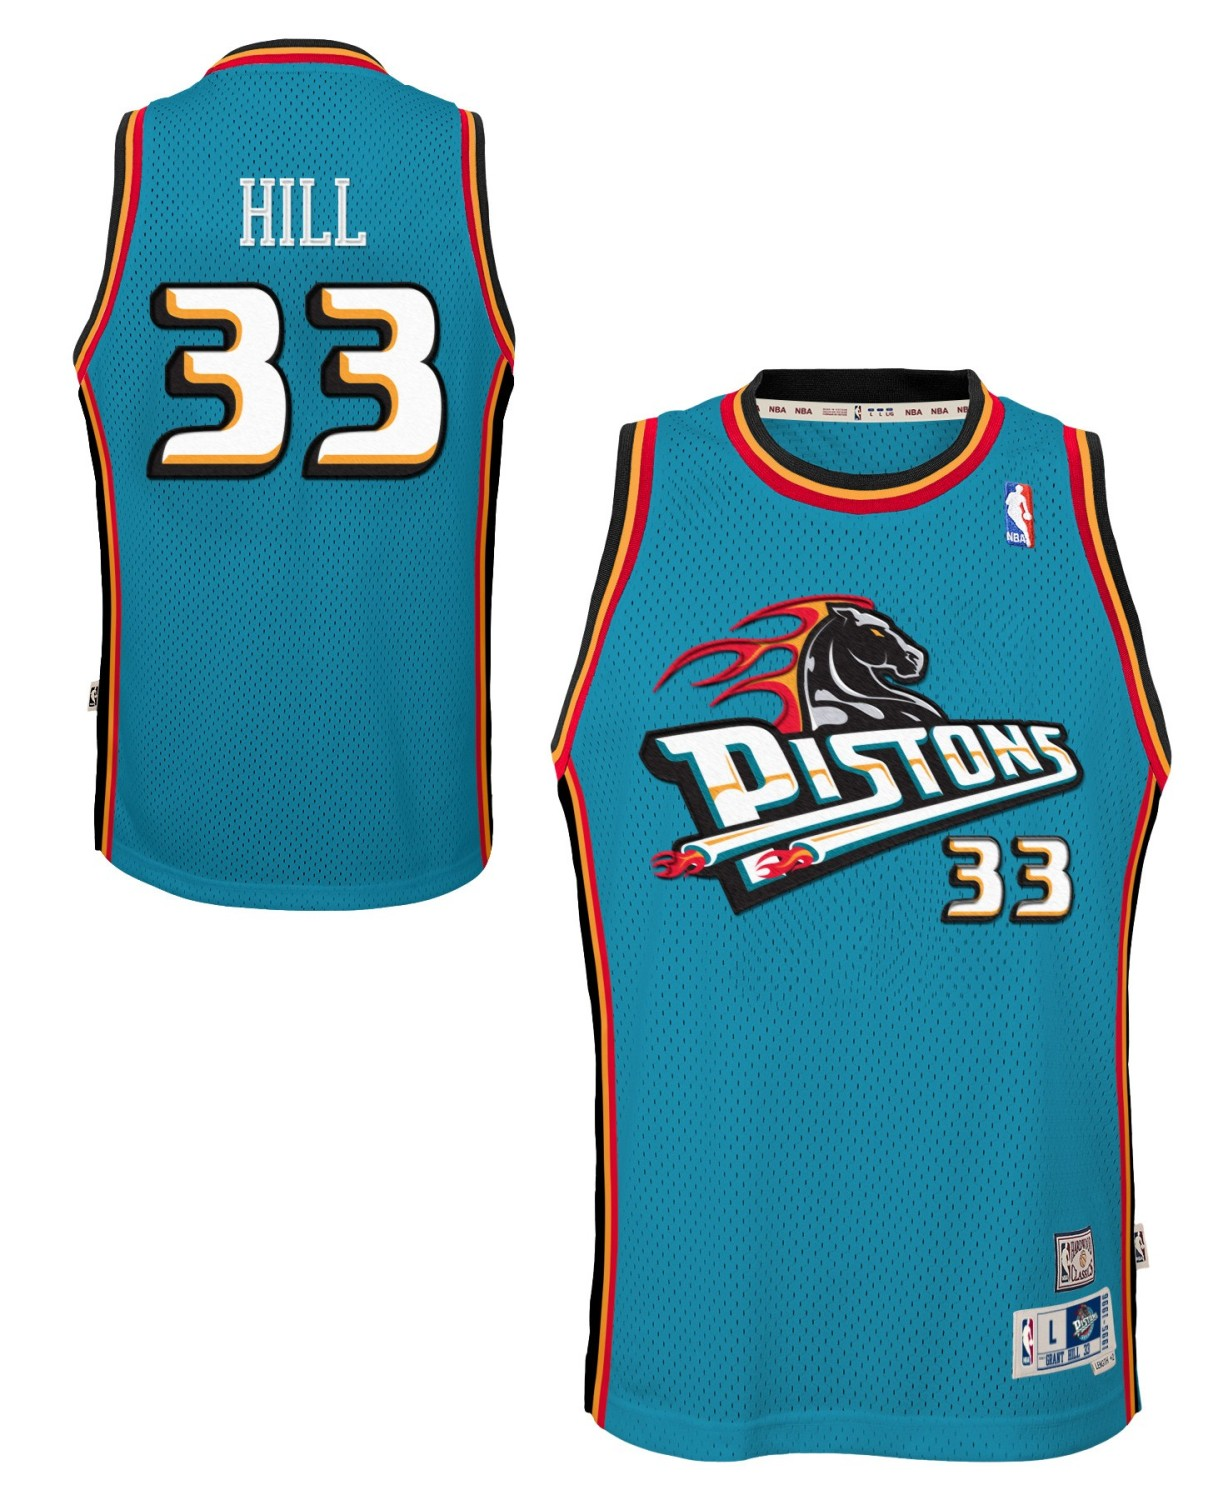 Grant Hill Detroit Pistons NBA Youth Throwback Swingman Jersey - Teal